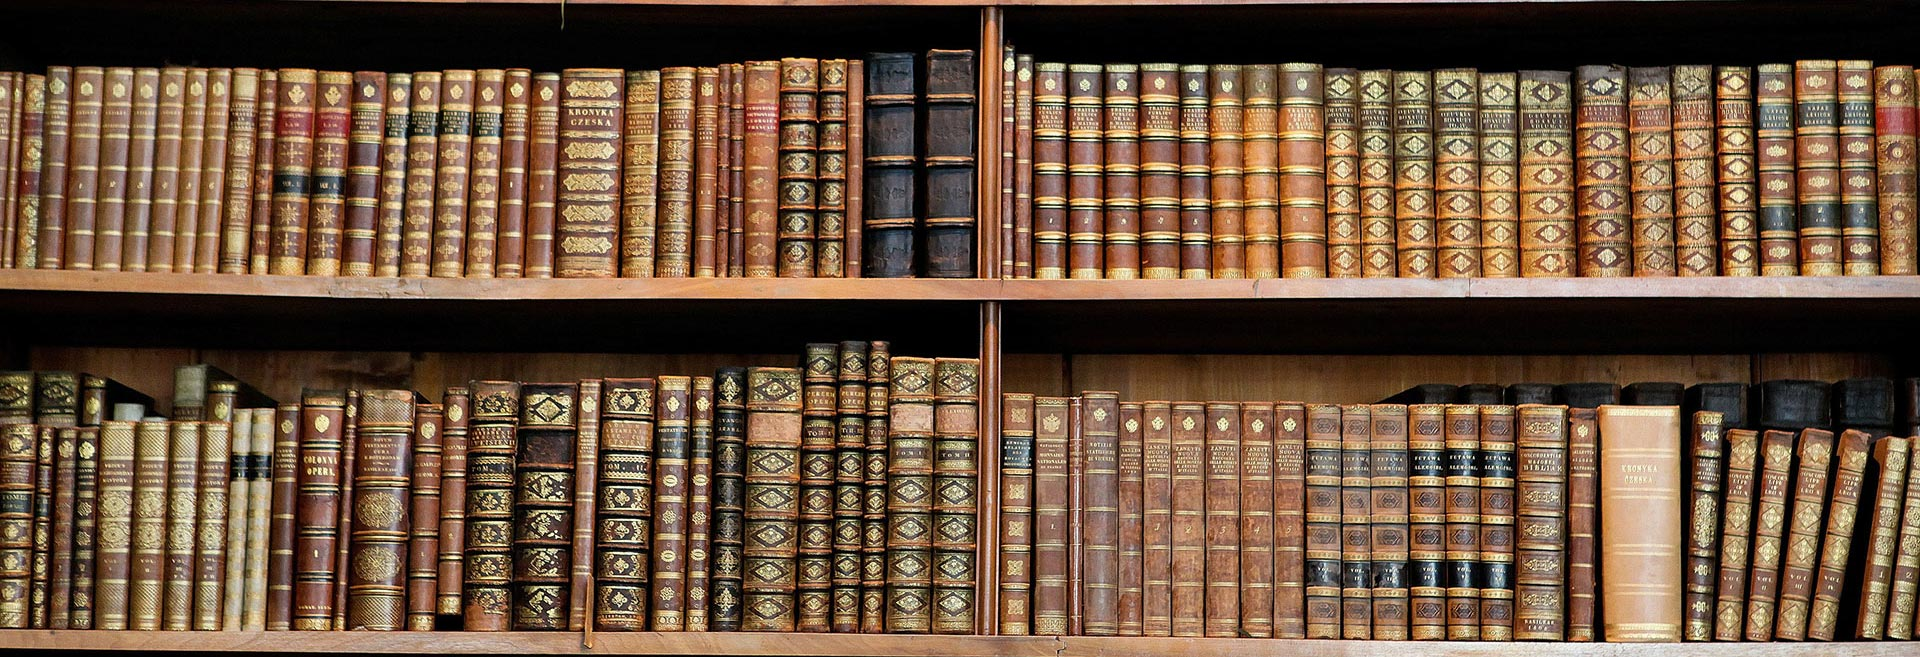 books-library-1920